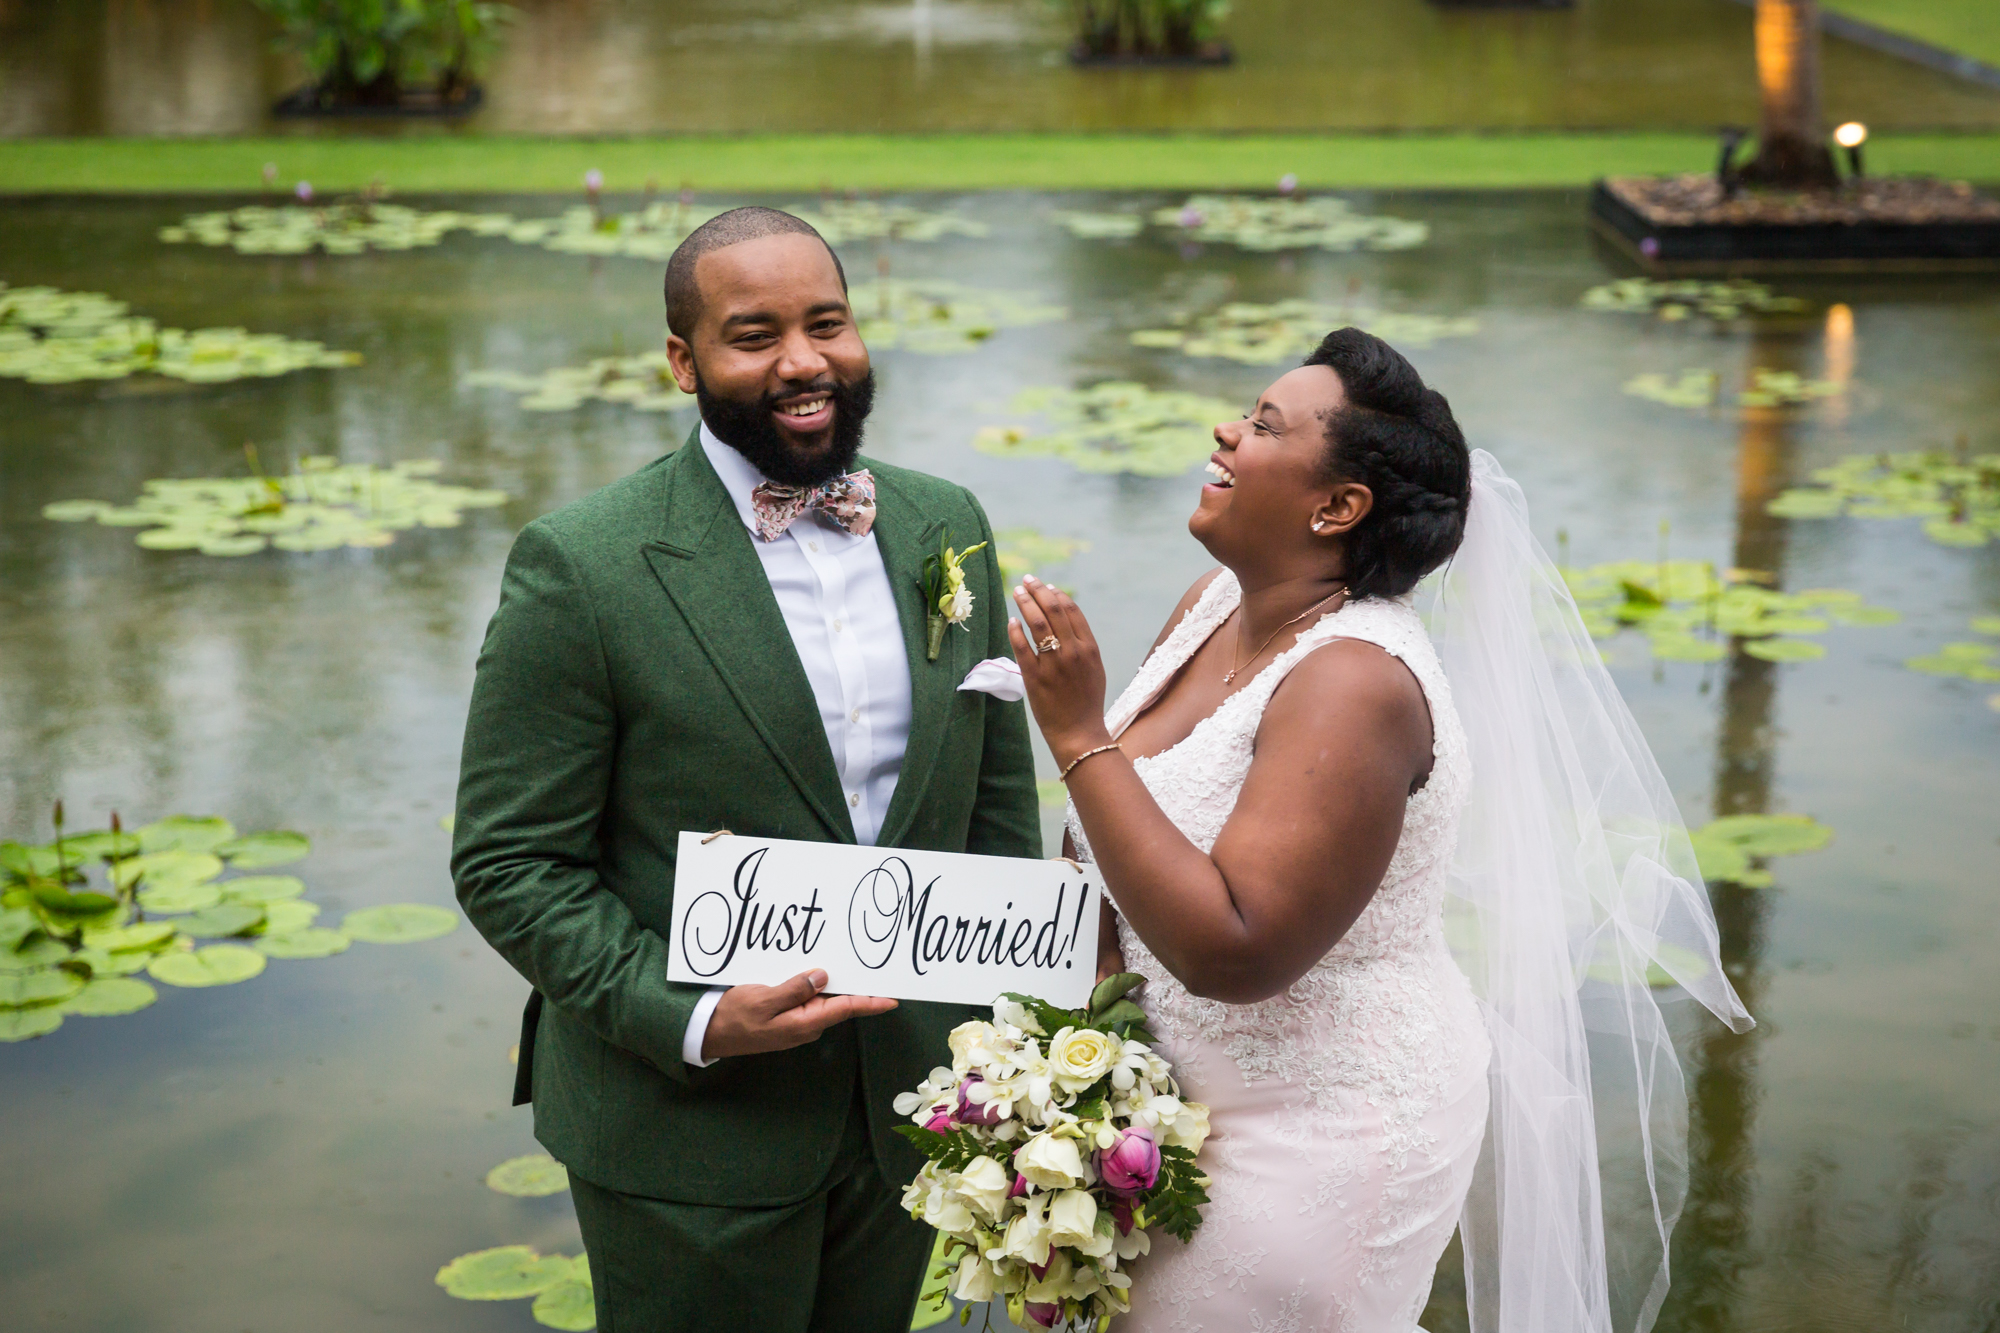 Bride and groom with 'Just Married' sign for an article on destination wedding photography tips